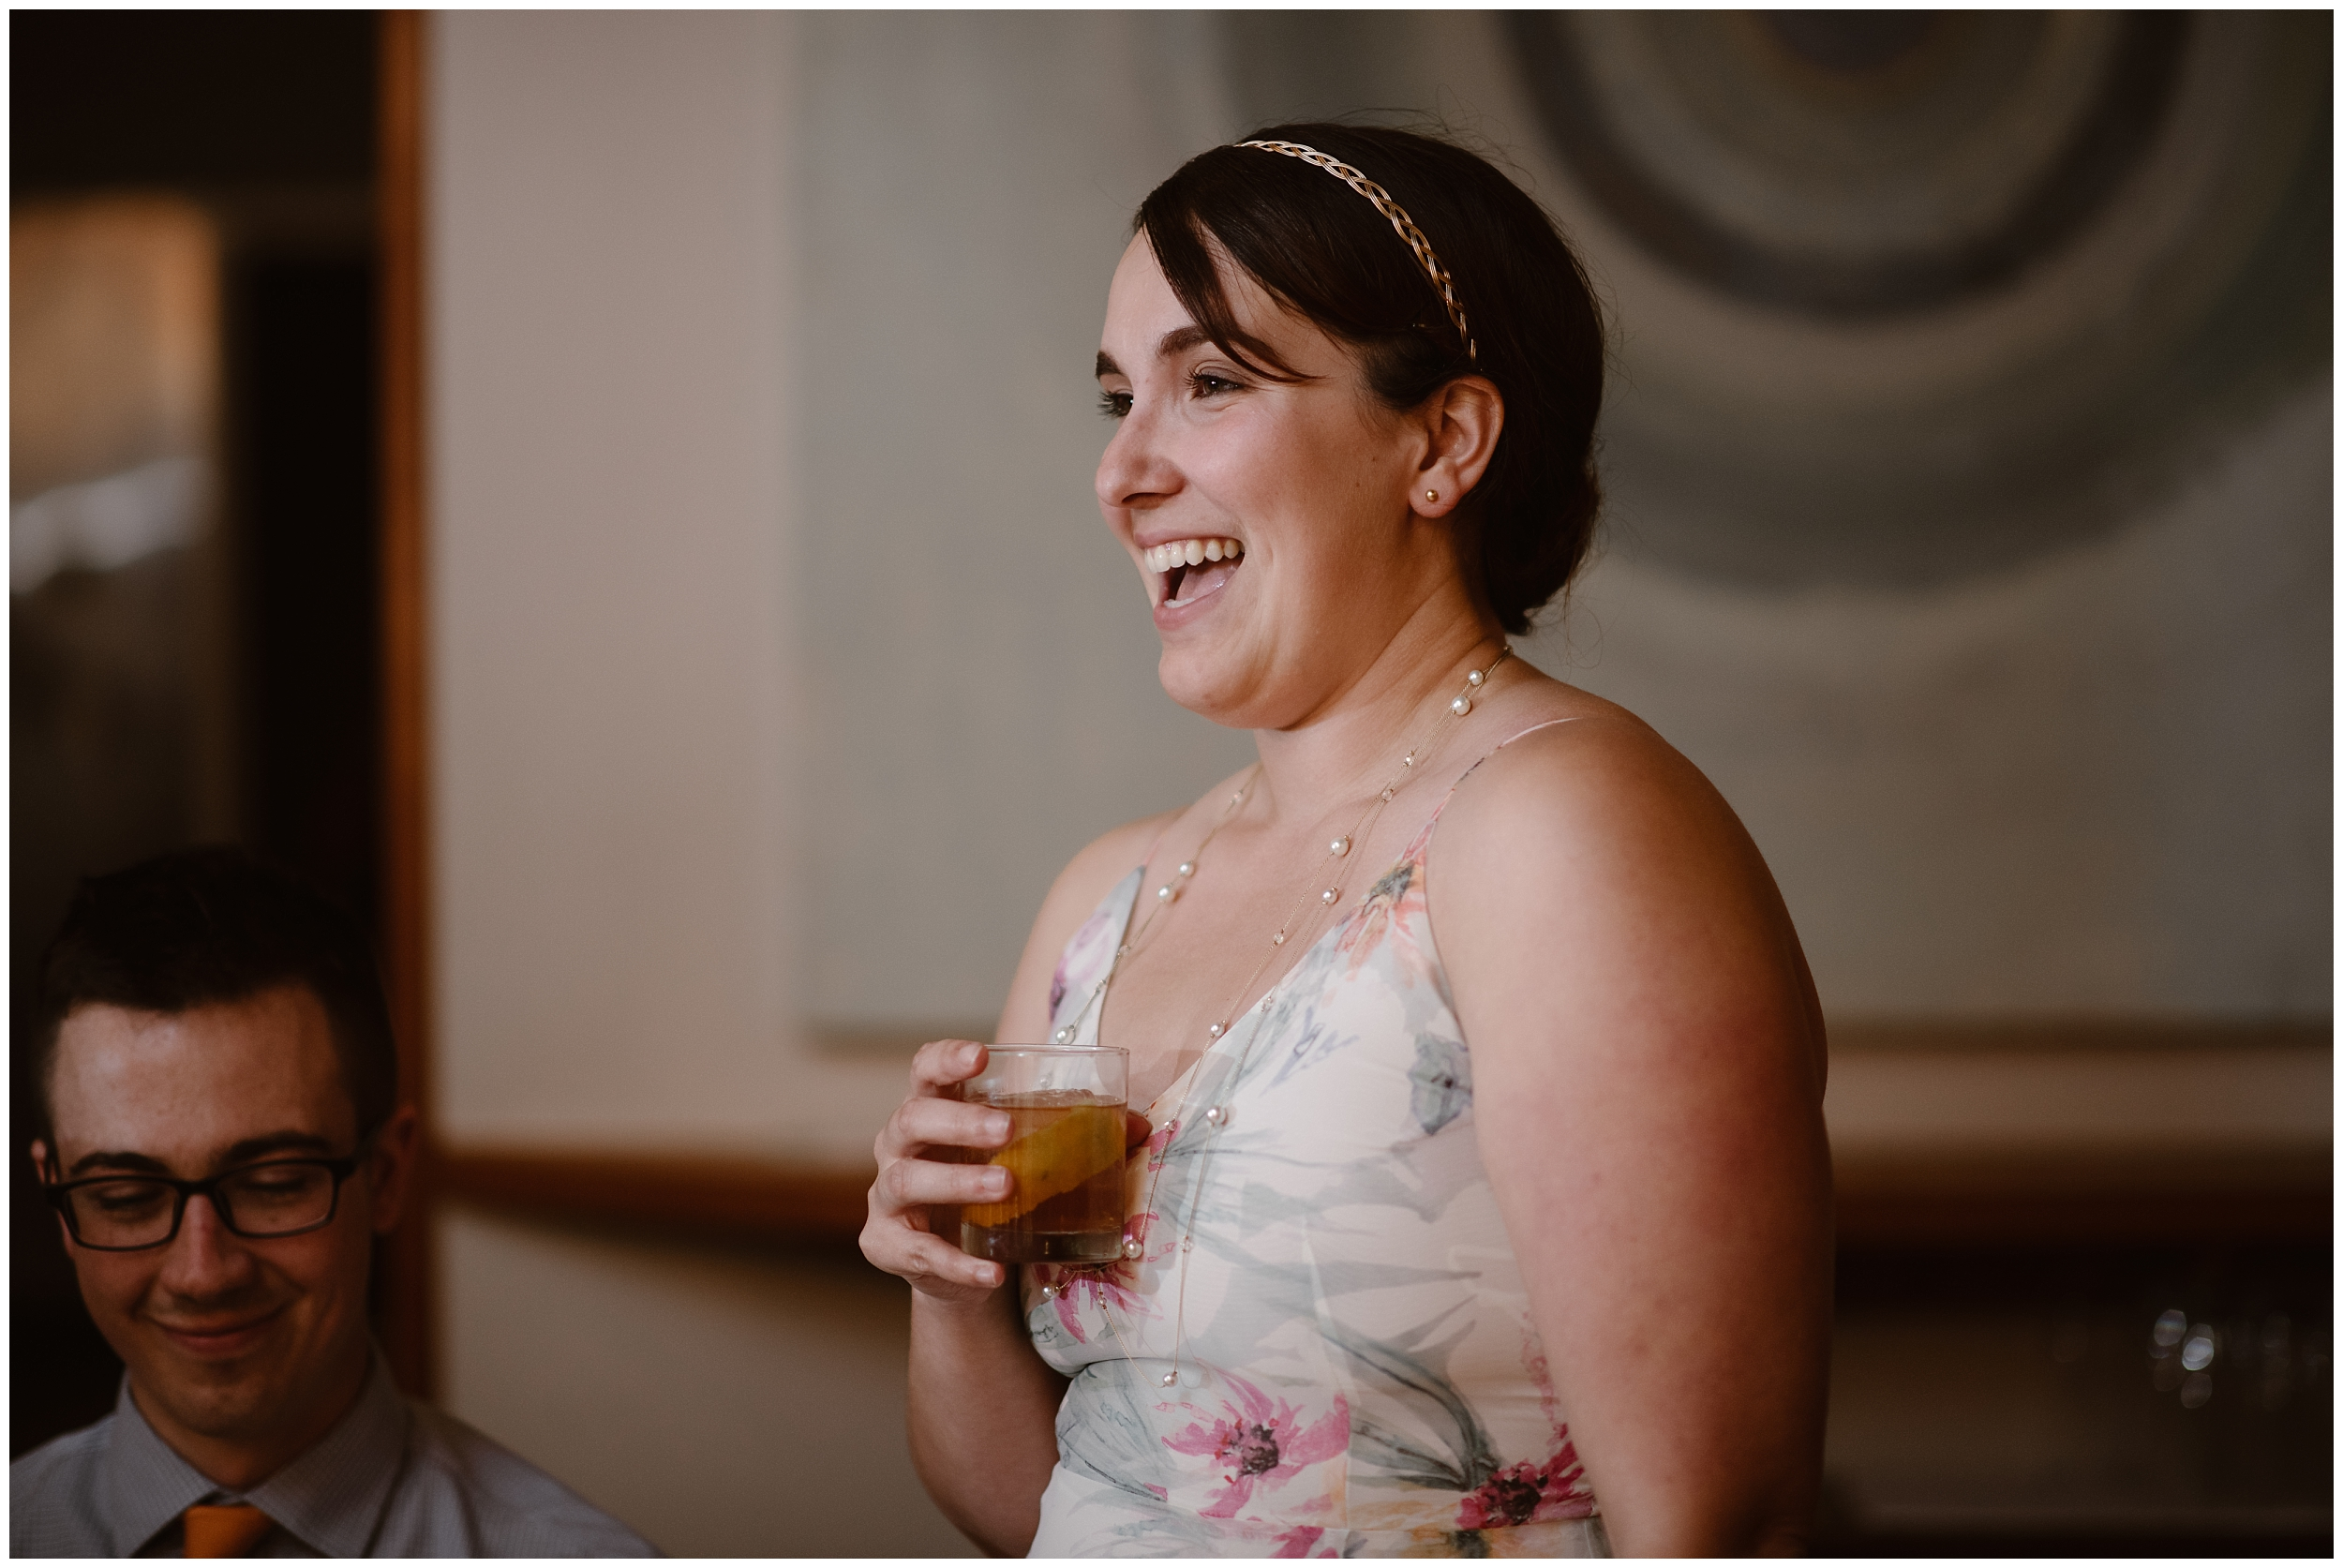 A family member stands up at the table during the party after eloping and gives a toast. The guest, smiling, holds a drink her hand as she stares at the bride and groom during their reception after elopement.